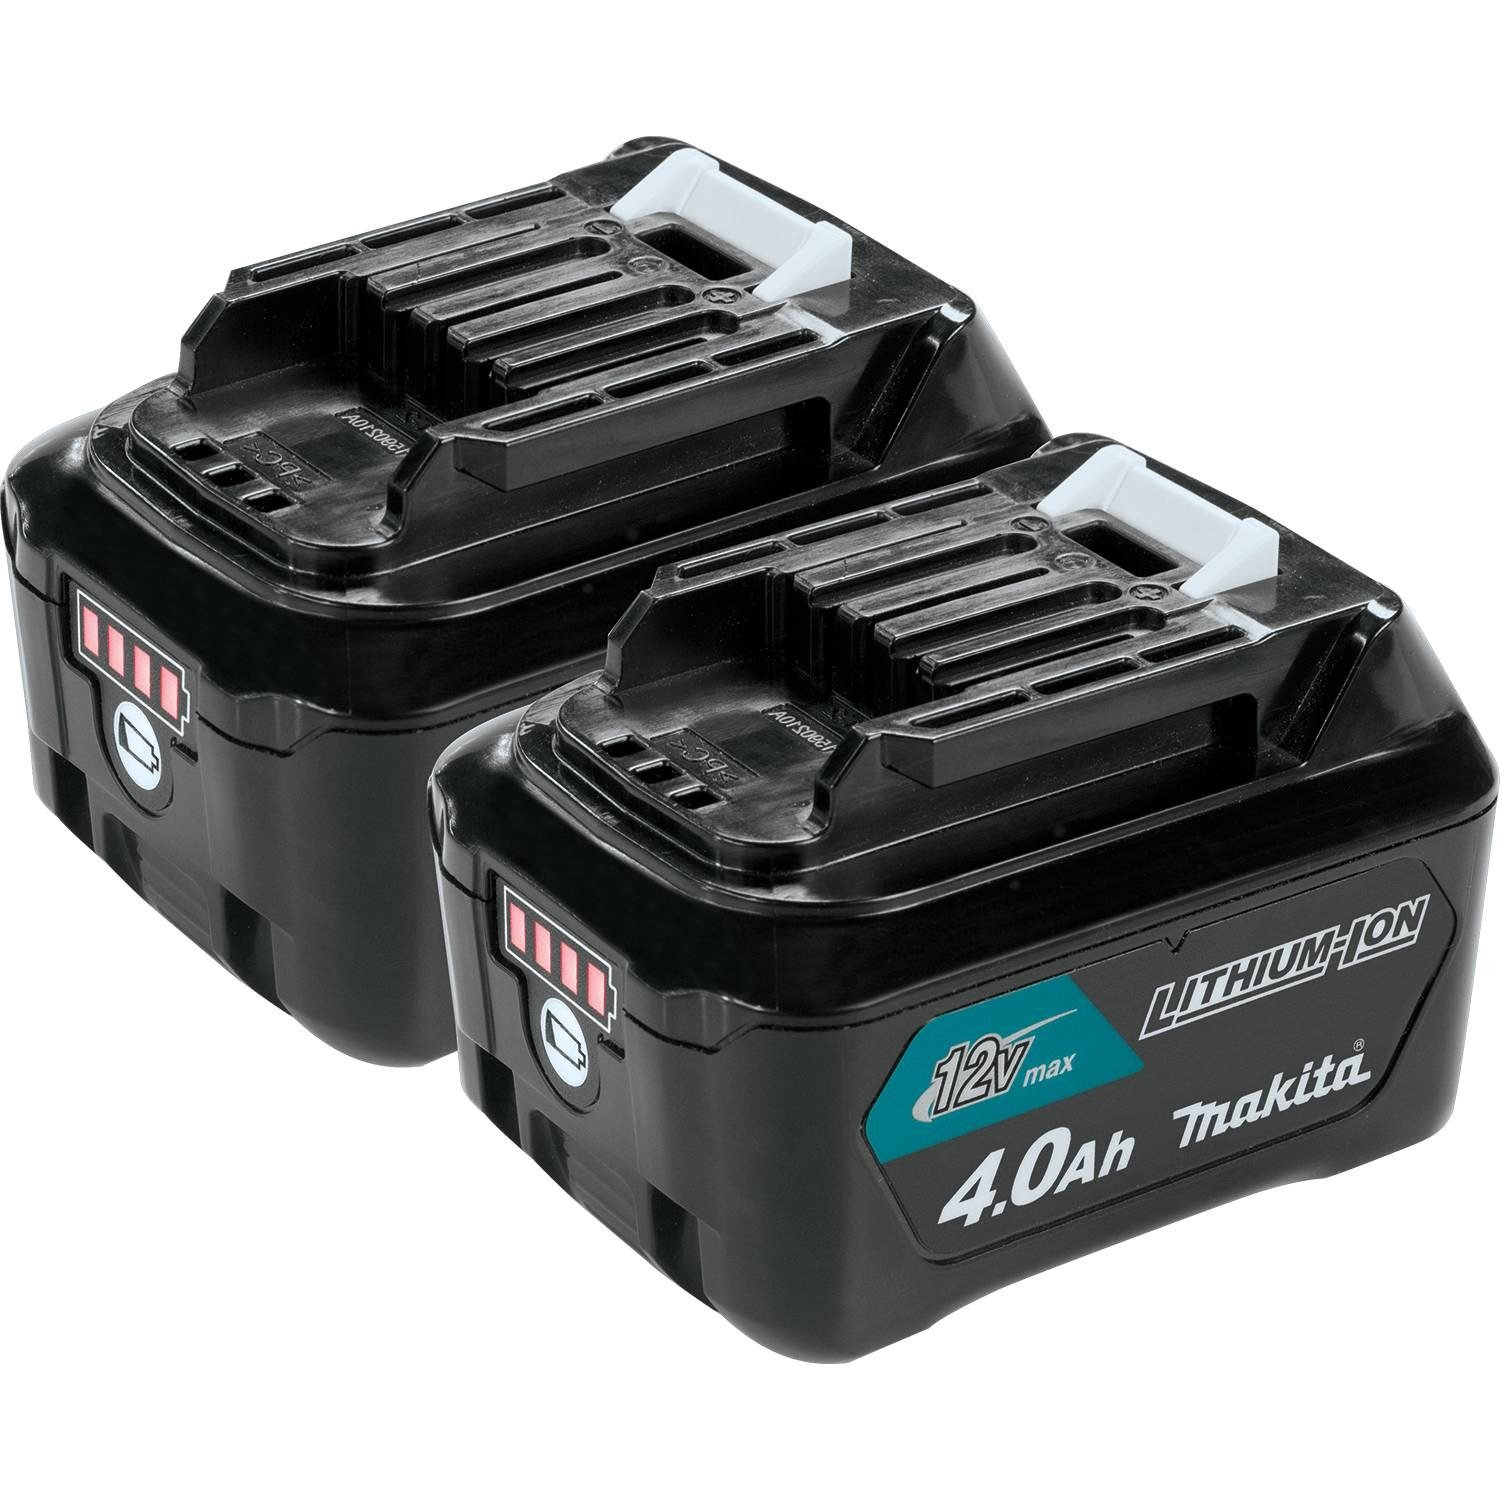 Makita BL1041B-2  12V max CXT Lithium-Ion 4.0 Amp Battery (2 Pack) by Makita (Image #1)